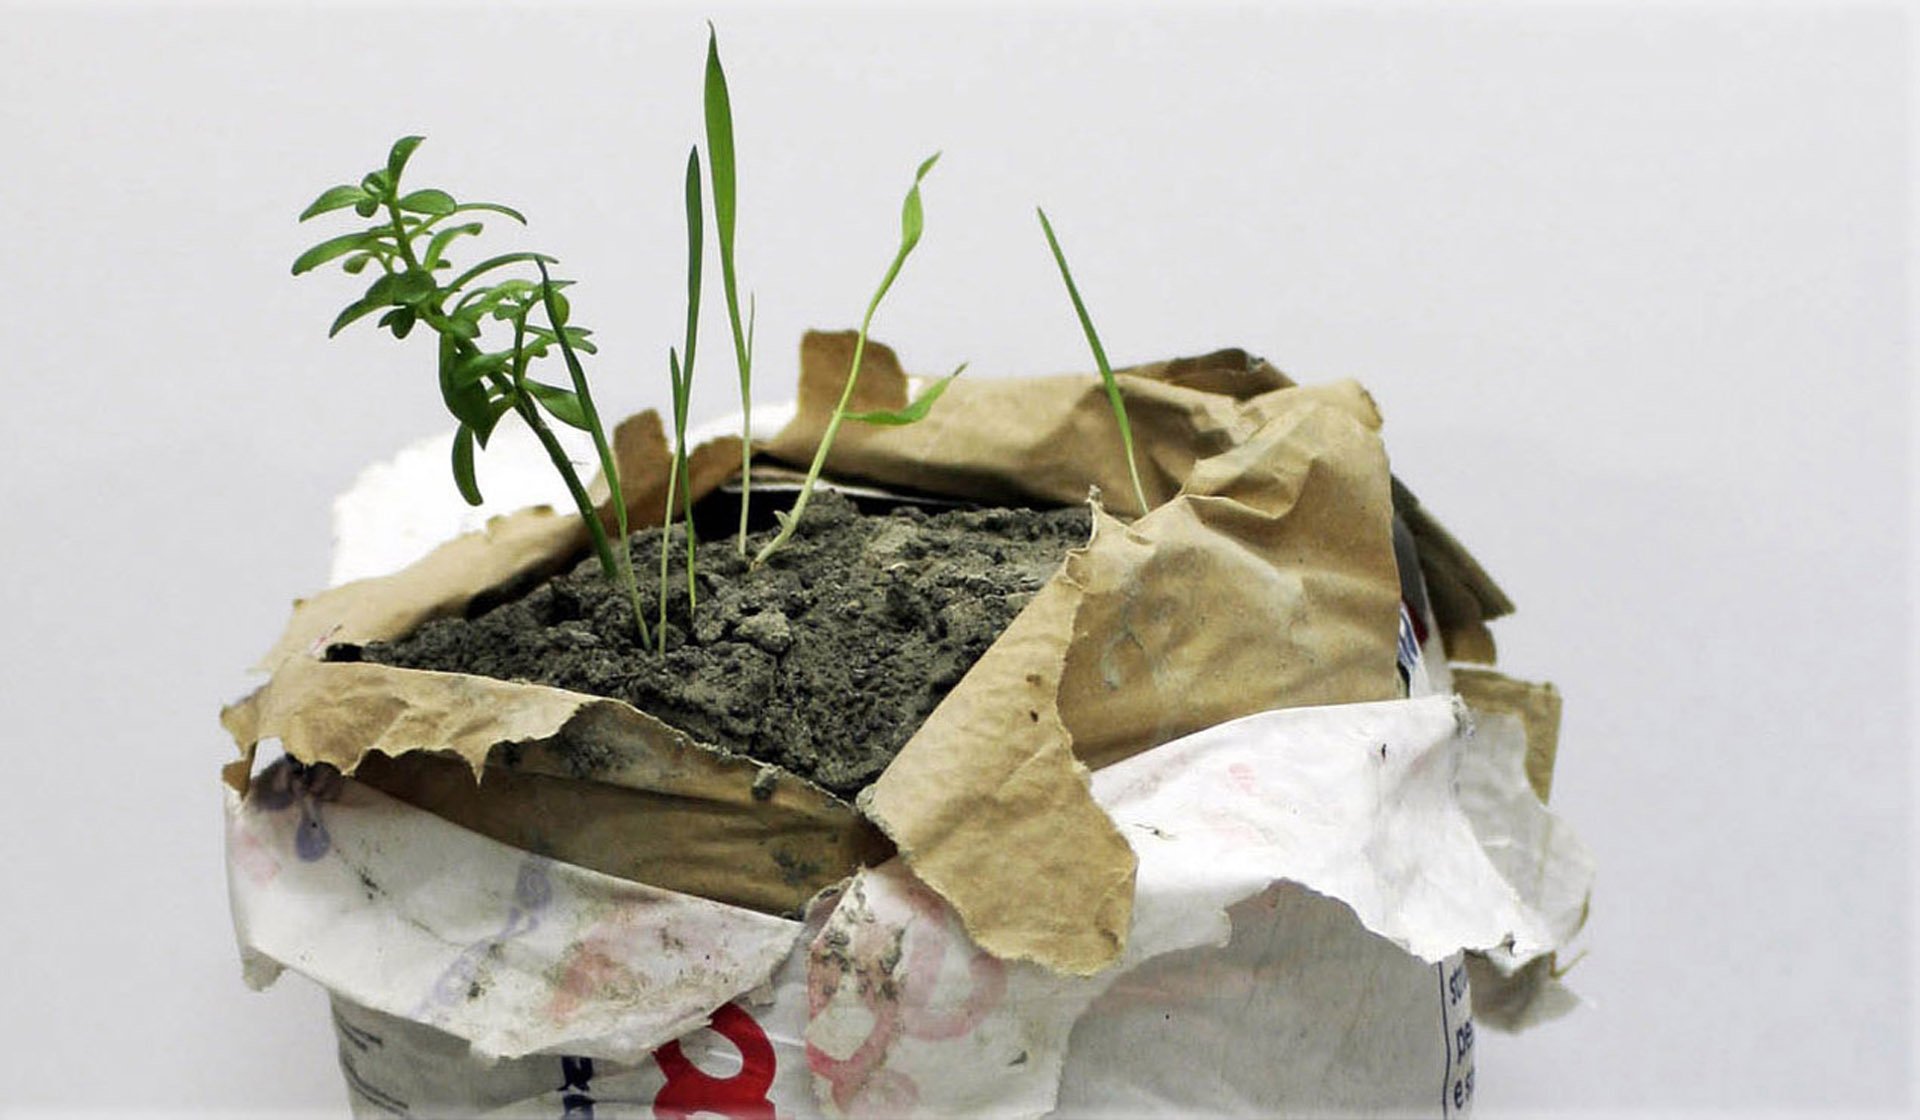 DETAIL: Performance of a plant - 2013, concrete bag and spontaneous plant